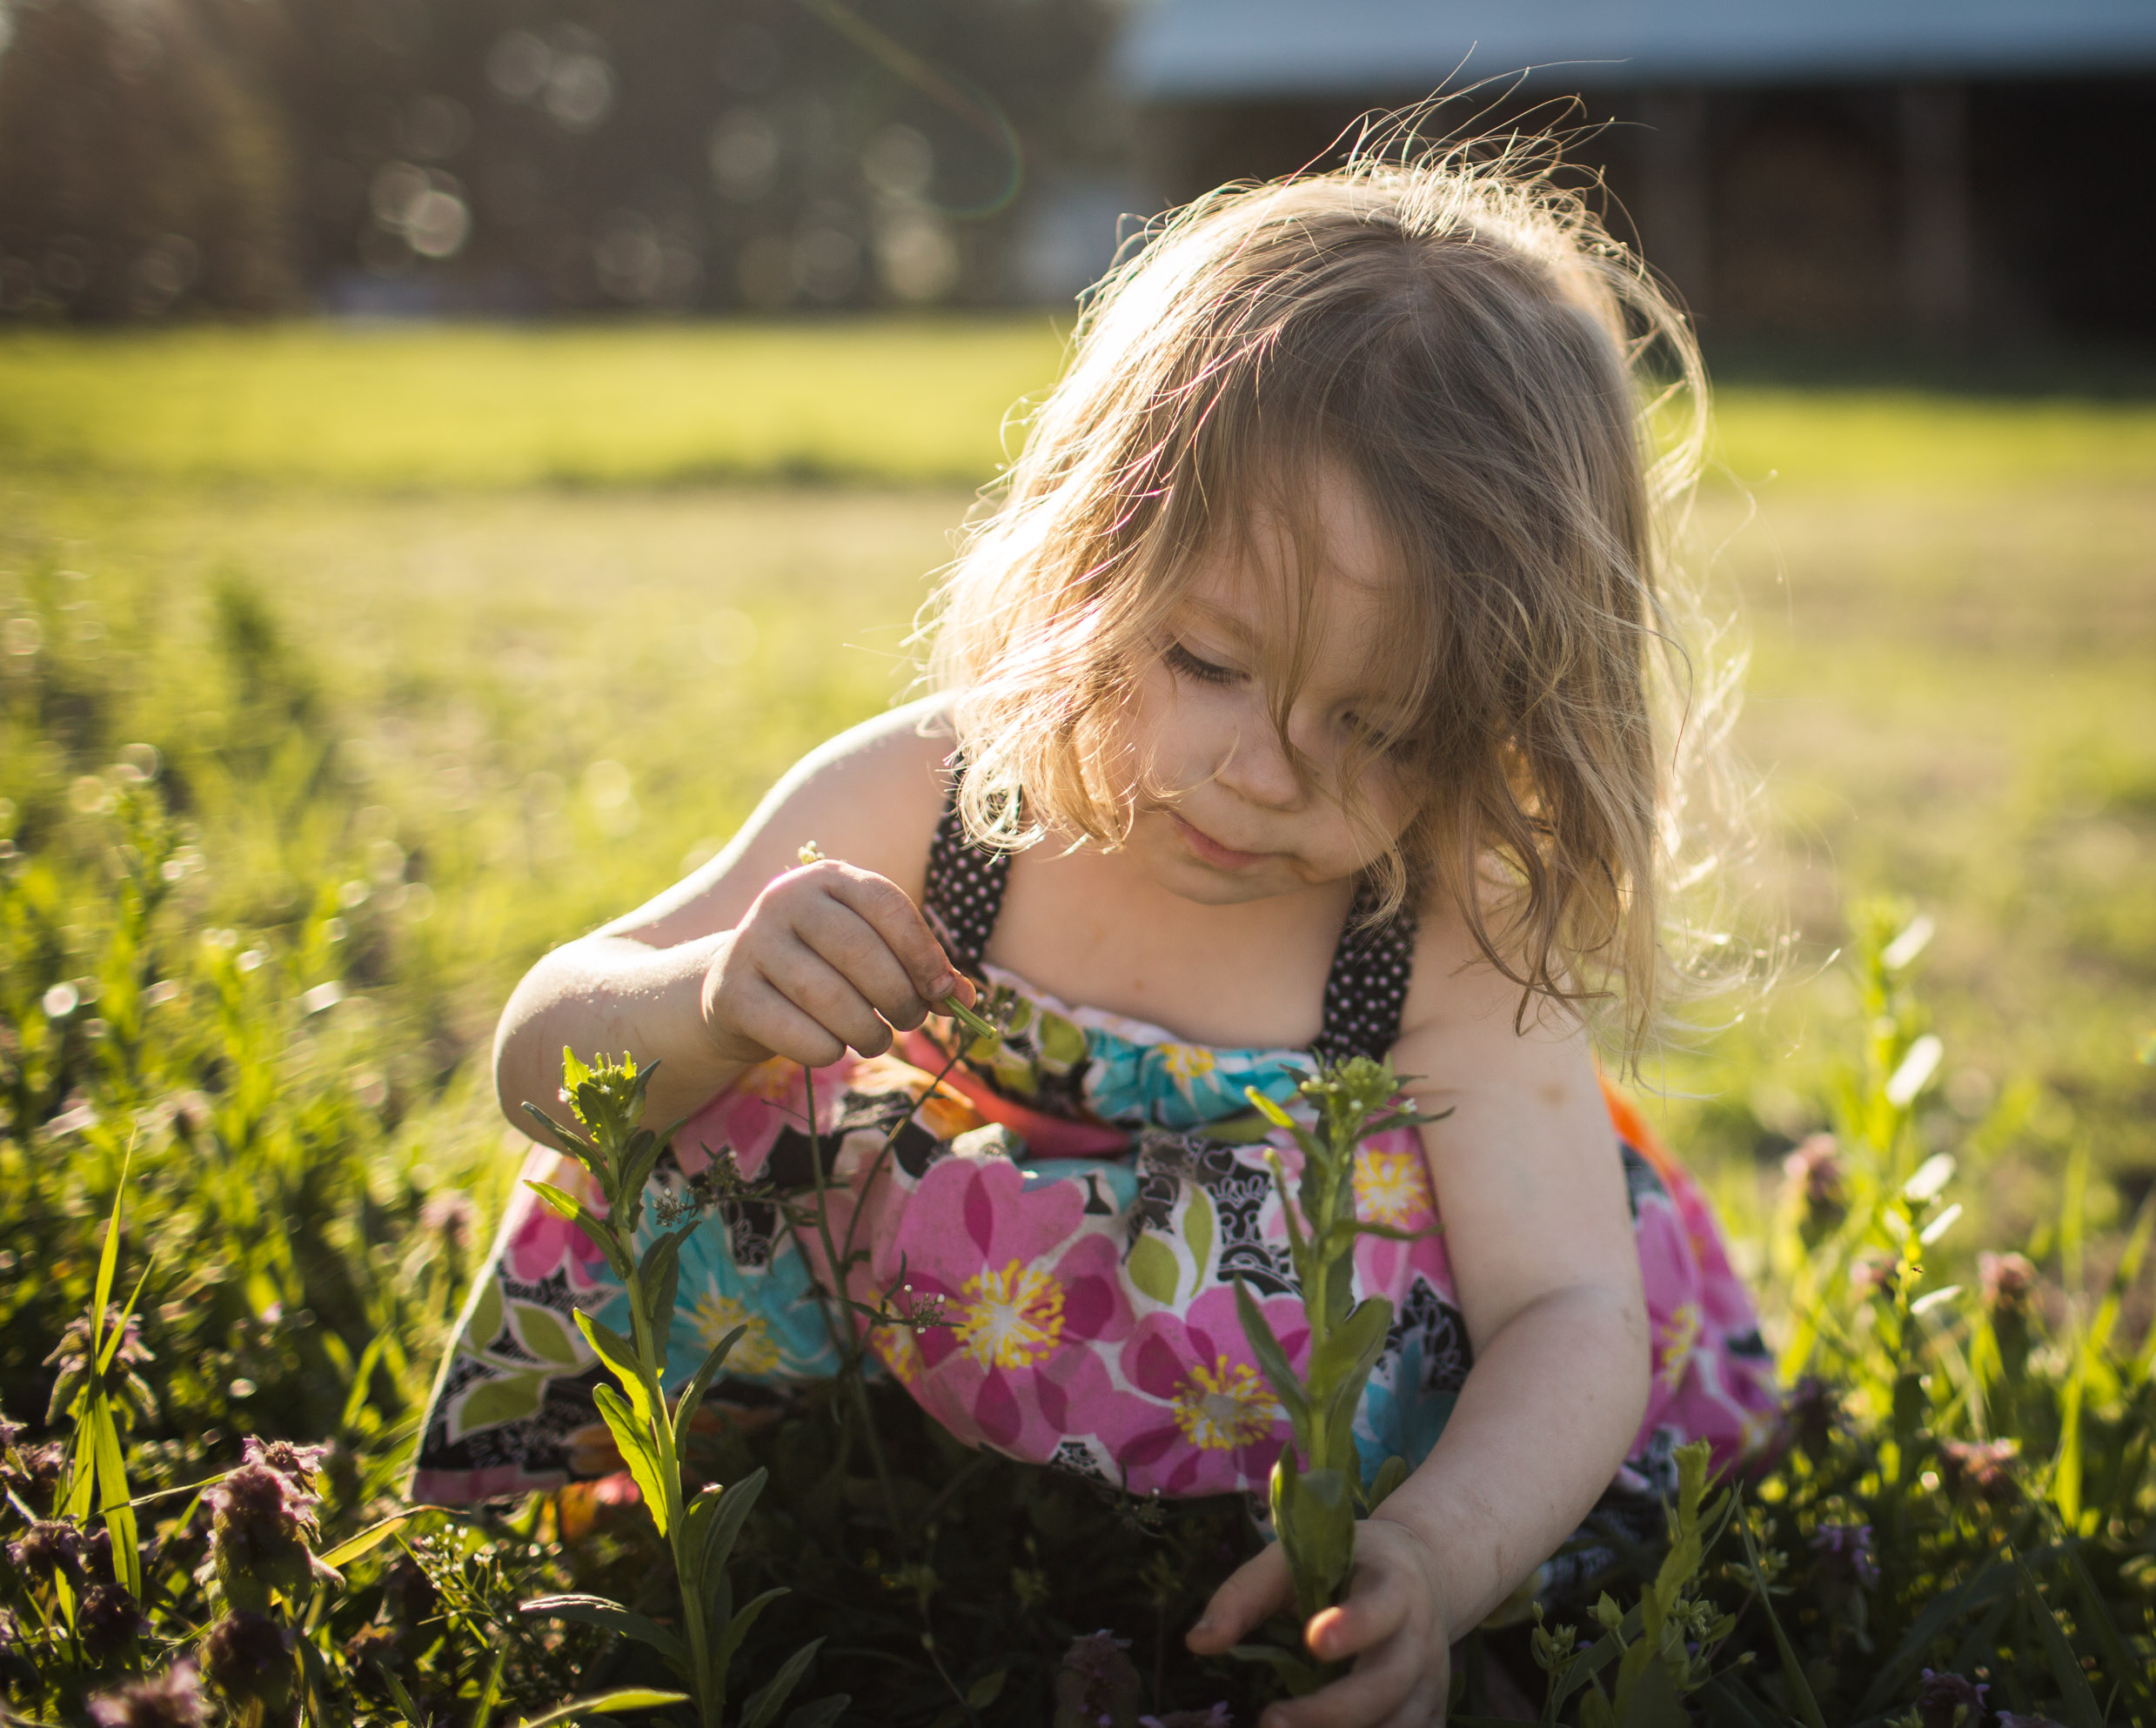 Exploring, Connected, Powerful, Lifestyle Family Sunset Session, Farm, Indiana, Laura Duggleby Photography-23.JPG